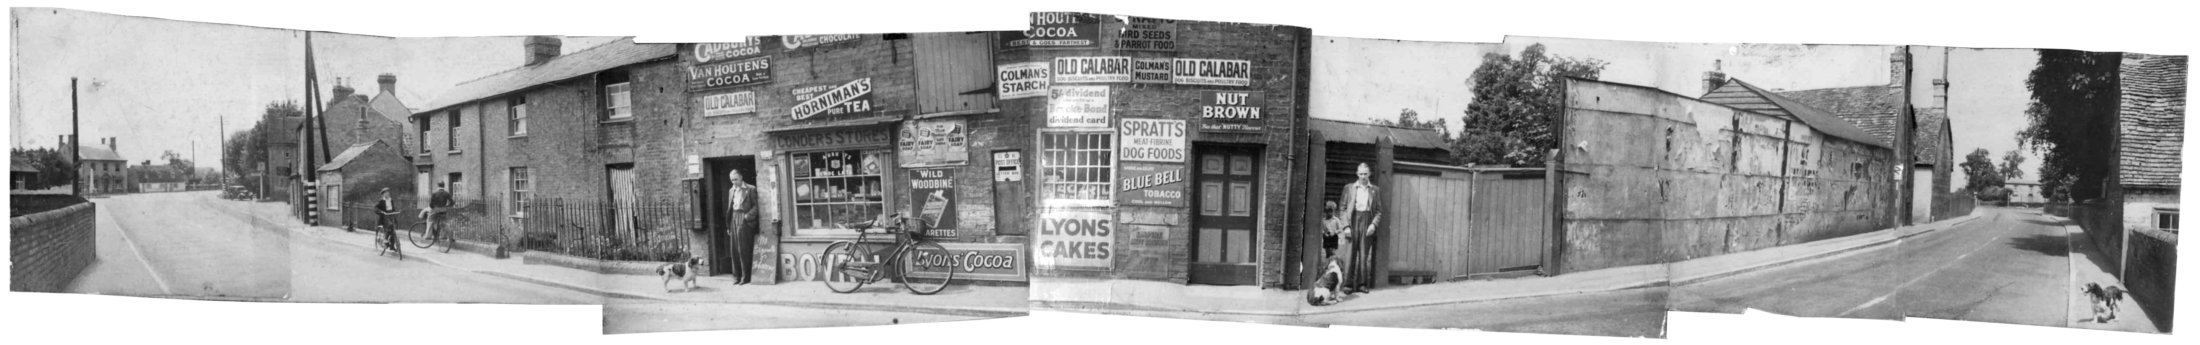 Panorama centred on Arthur Conder's Grocers Shop